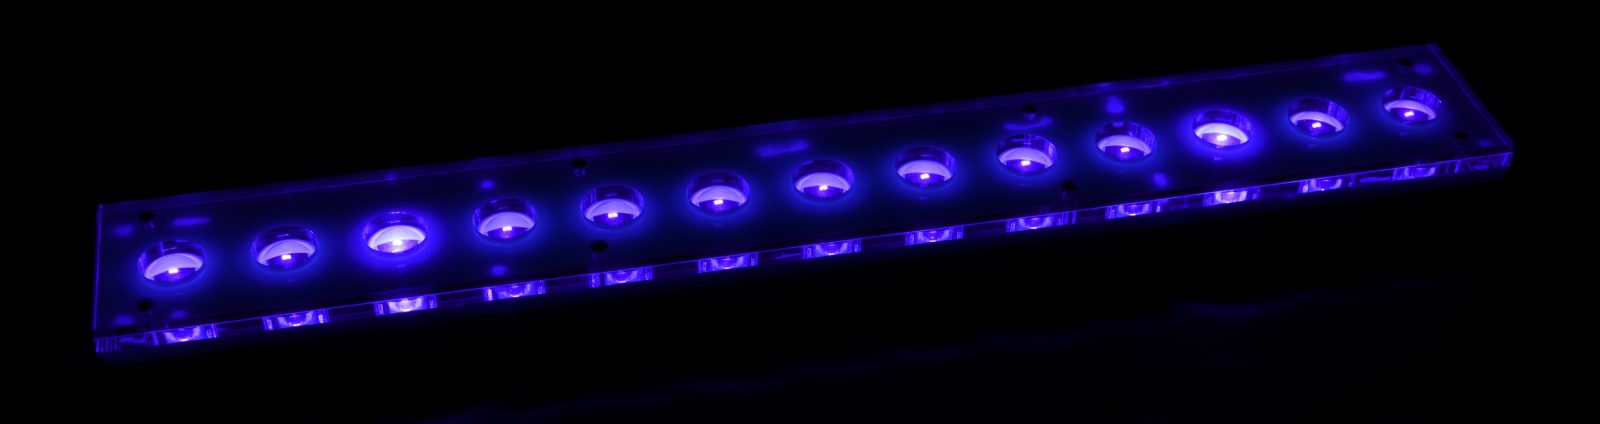 Super Blue LED Slim Line-violeta